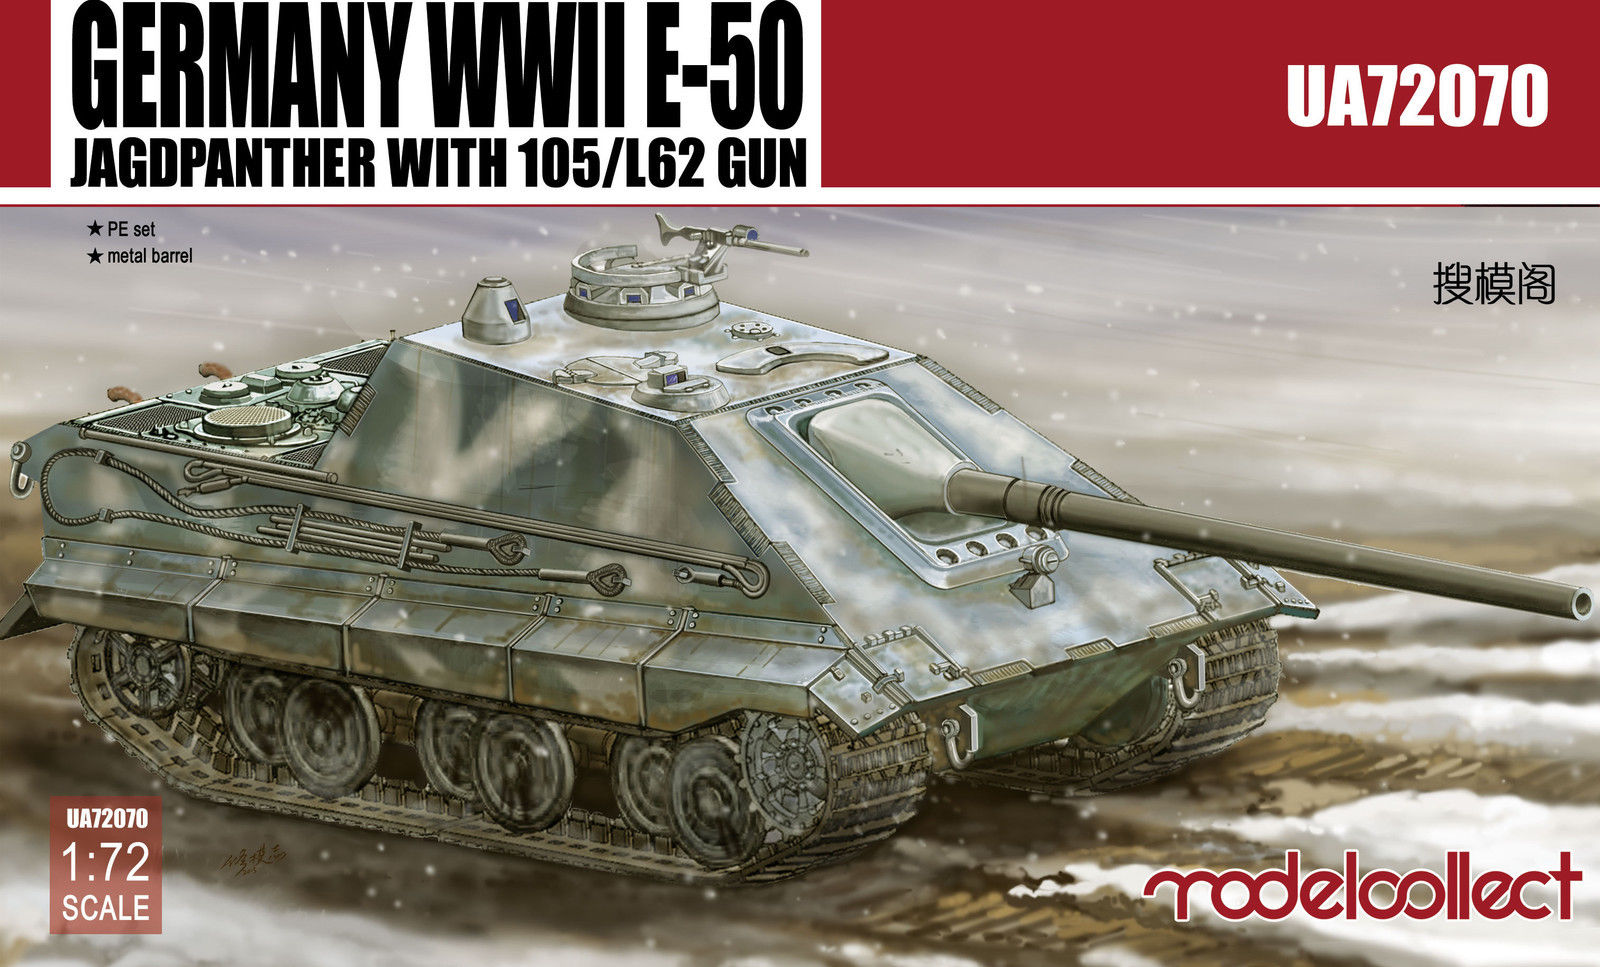 Germany WWII E-50 STUG with 105/L62 gun